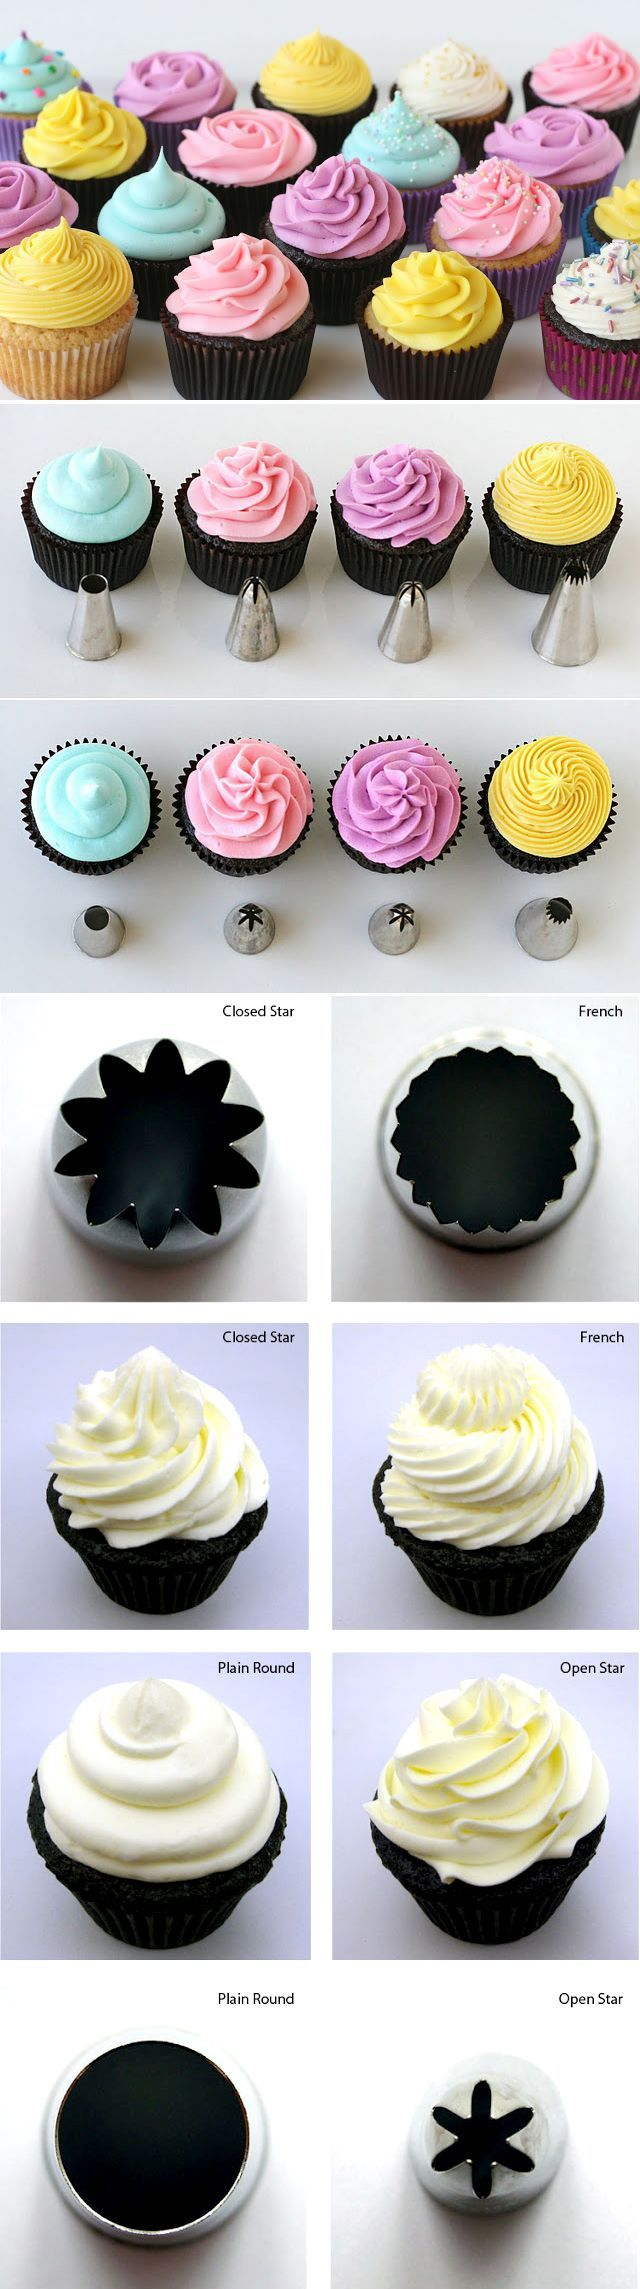 25+ best ideas about Cake decorating tips on Pinterest Icing techniques, Cake piping and ...